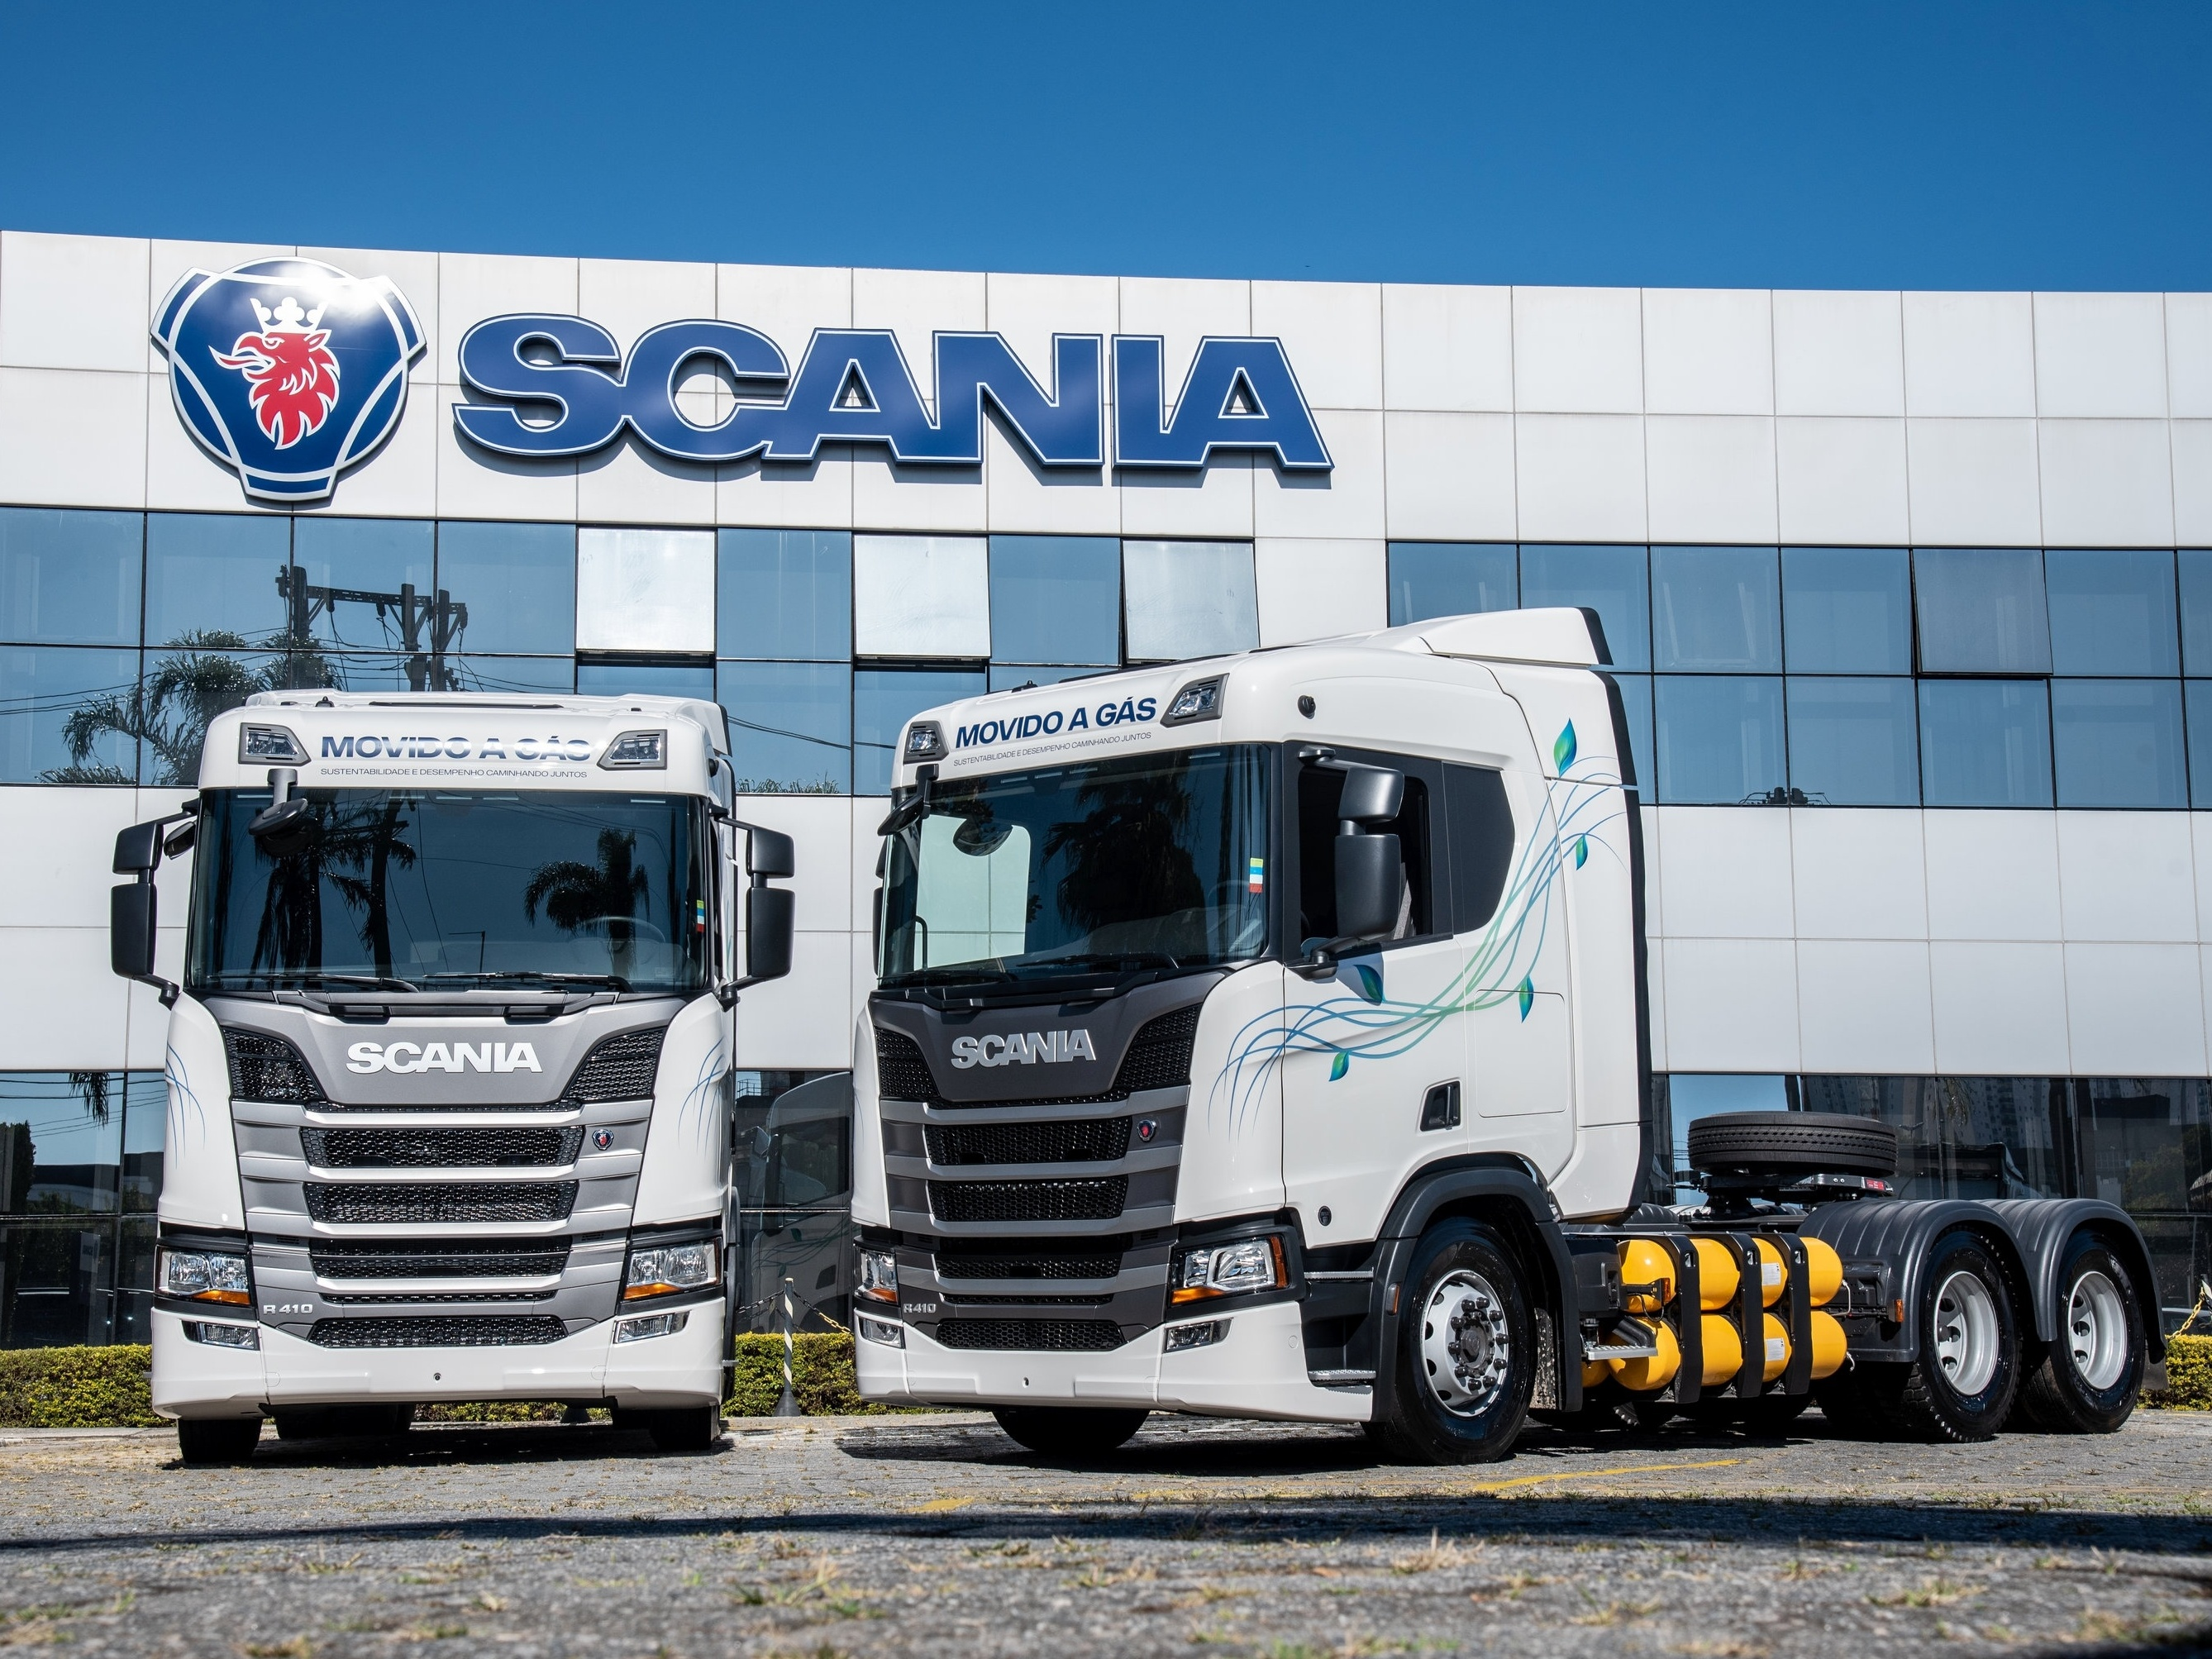 Scania delivers Brazil's first natural gas trucks